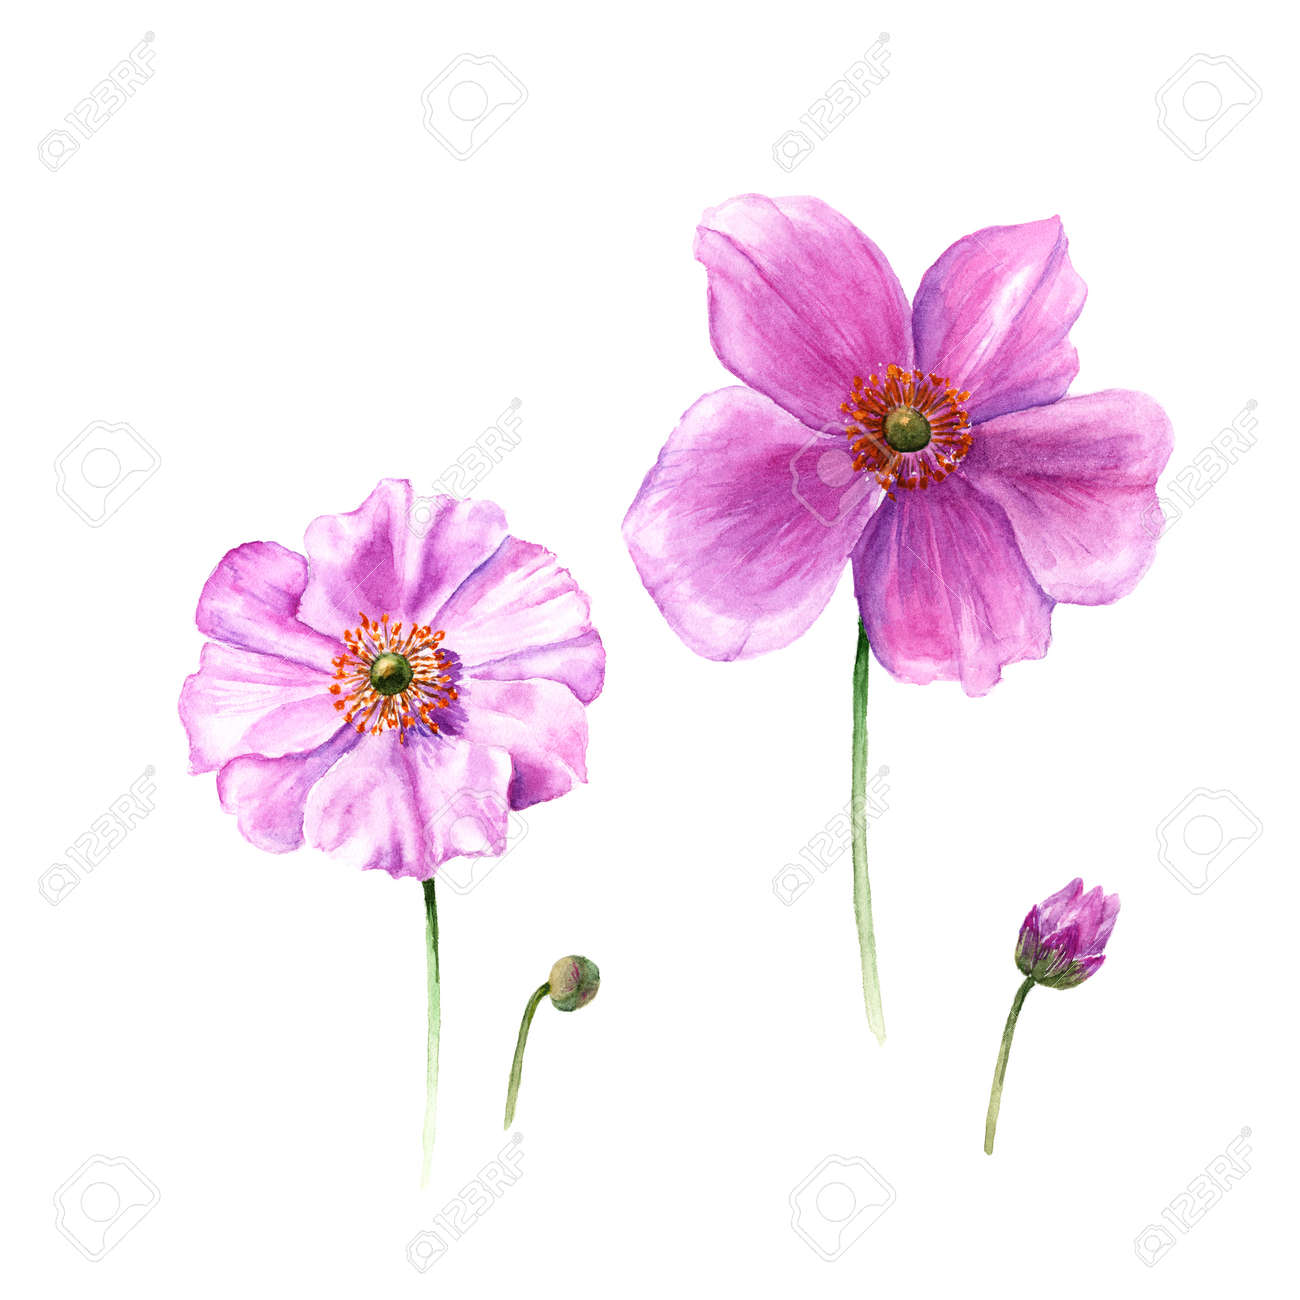 Watercolor Anemone Flowers And Buds Hand Drawn Single Flower